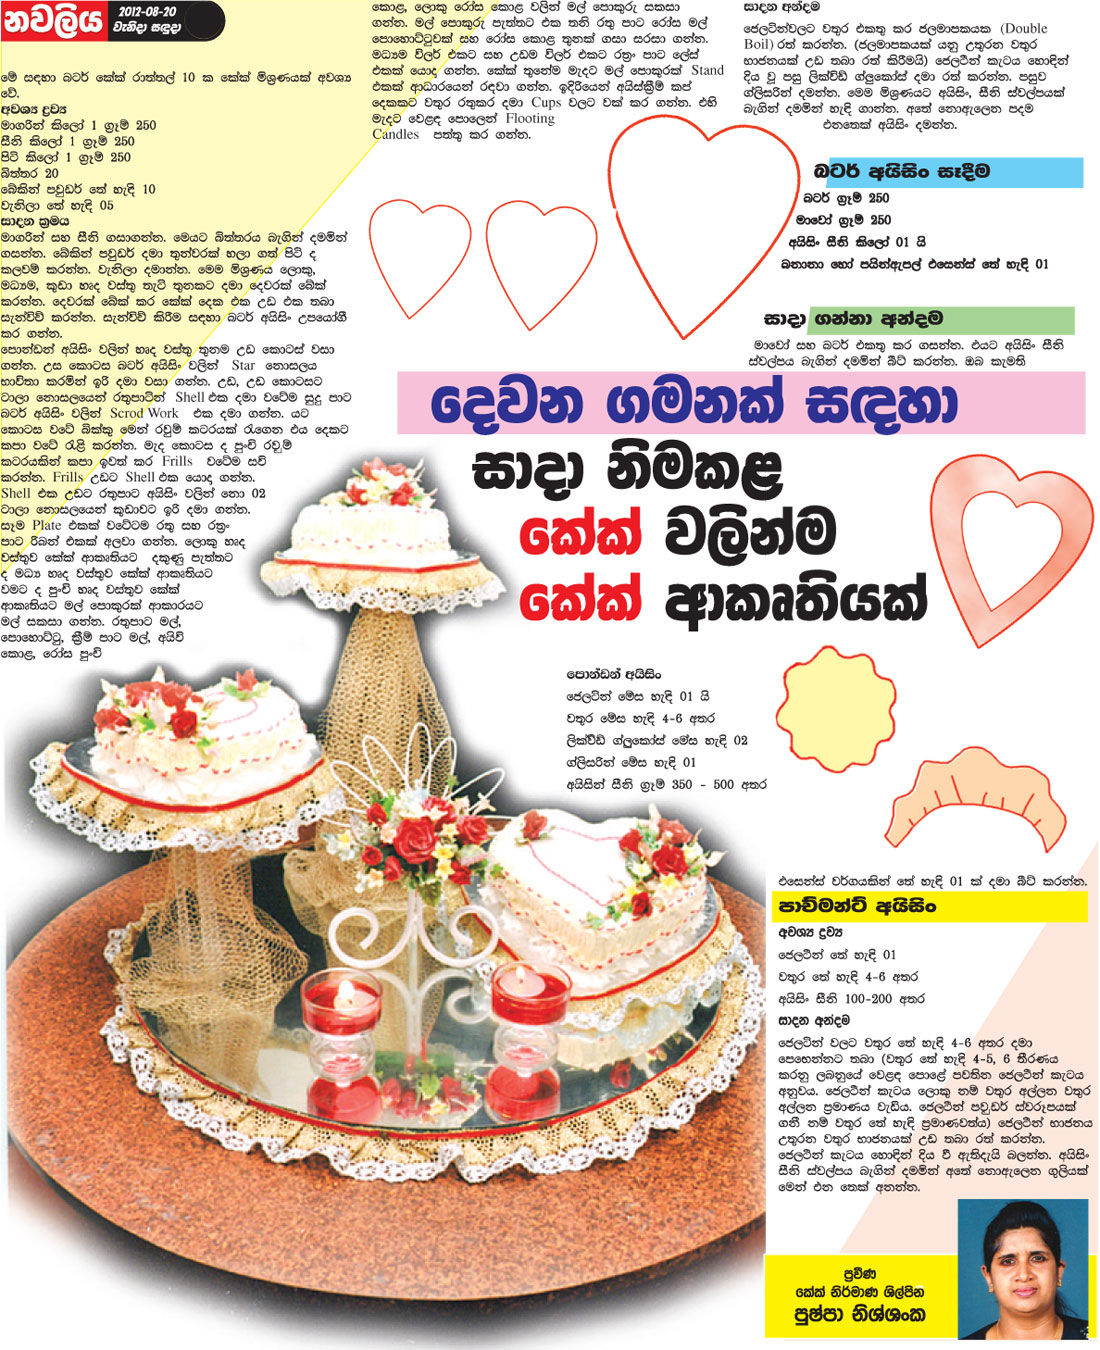 wedding cake recipes sri lanka sri lankan recipes in sinhala pdf beste awesome inspiration 23637